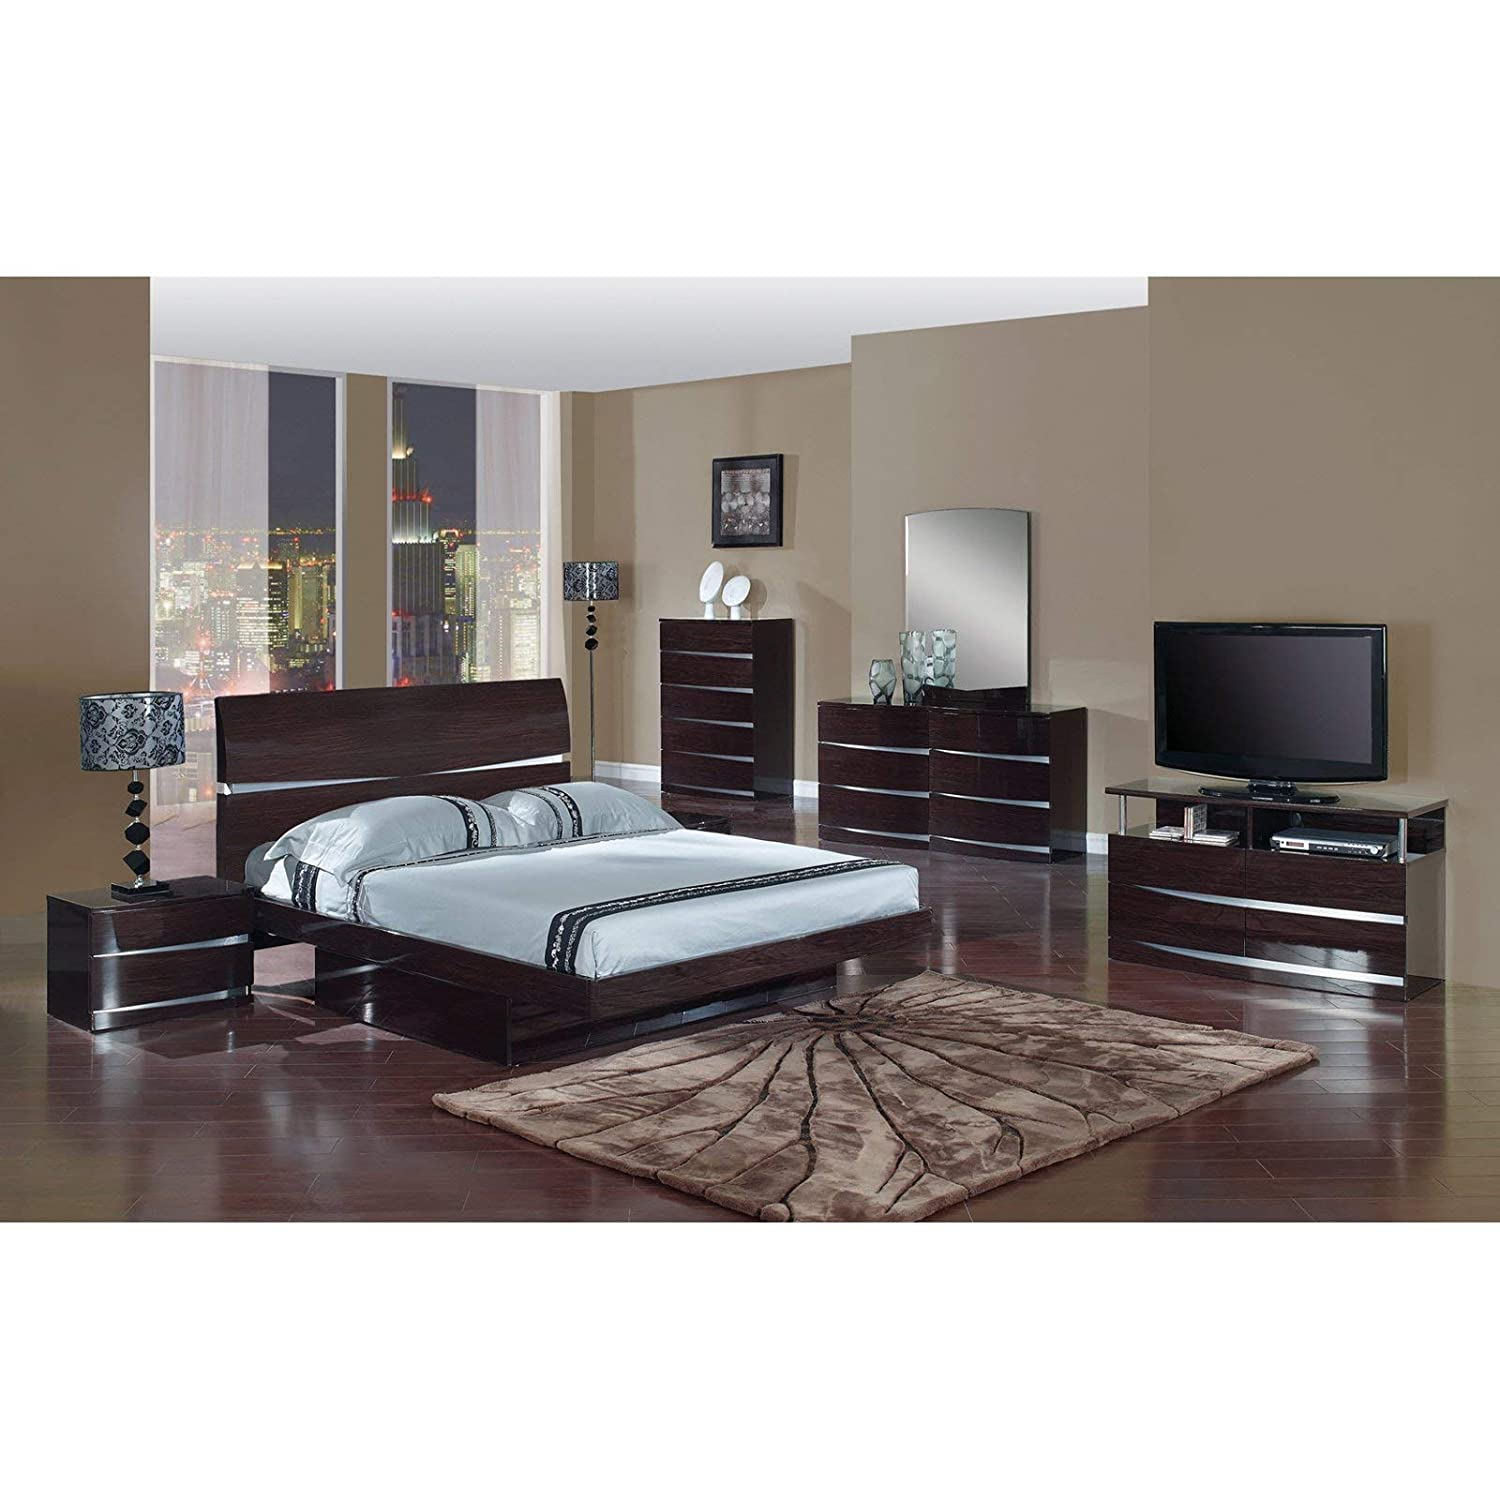 Global Furniture Aria Aurora Collection MDF Wood Veneer Bedroom Set with Entertainment Unit, Wenge